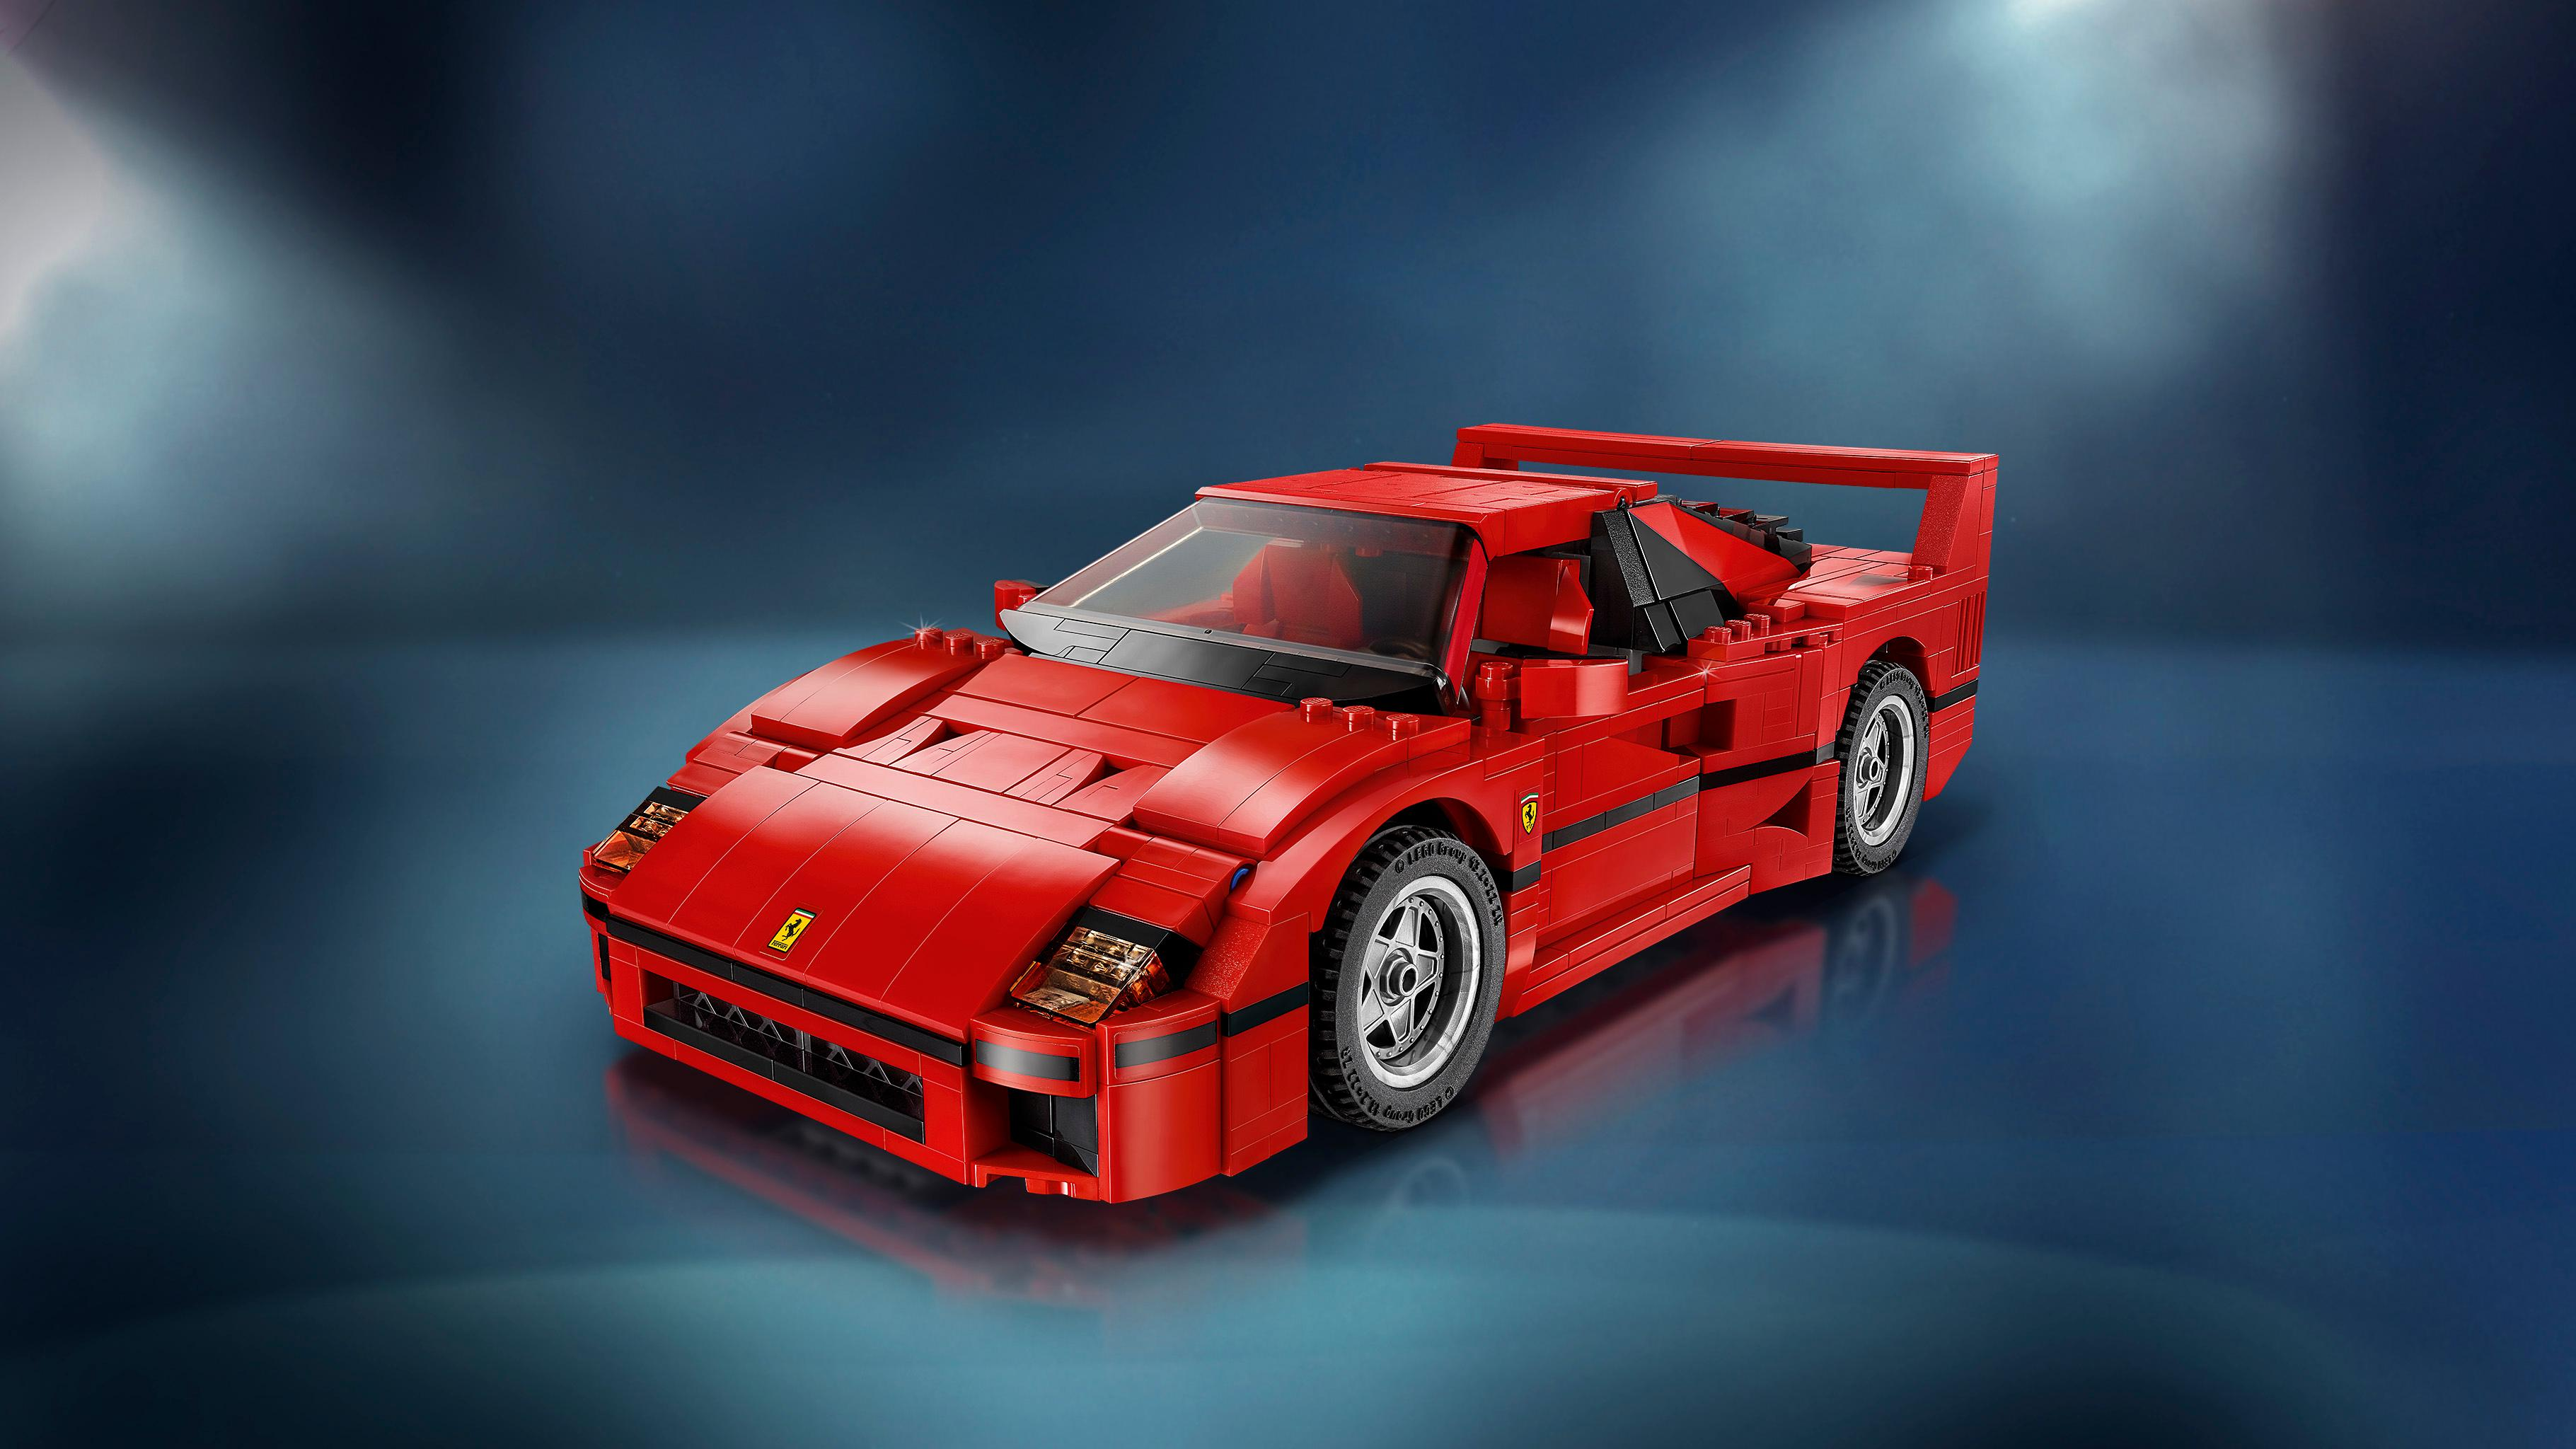 lego creator expert ferrari f40 10248 construction set toys games. Black Bedroom Furniture Sets. Home Design Ideas